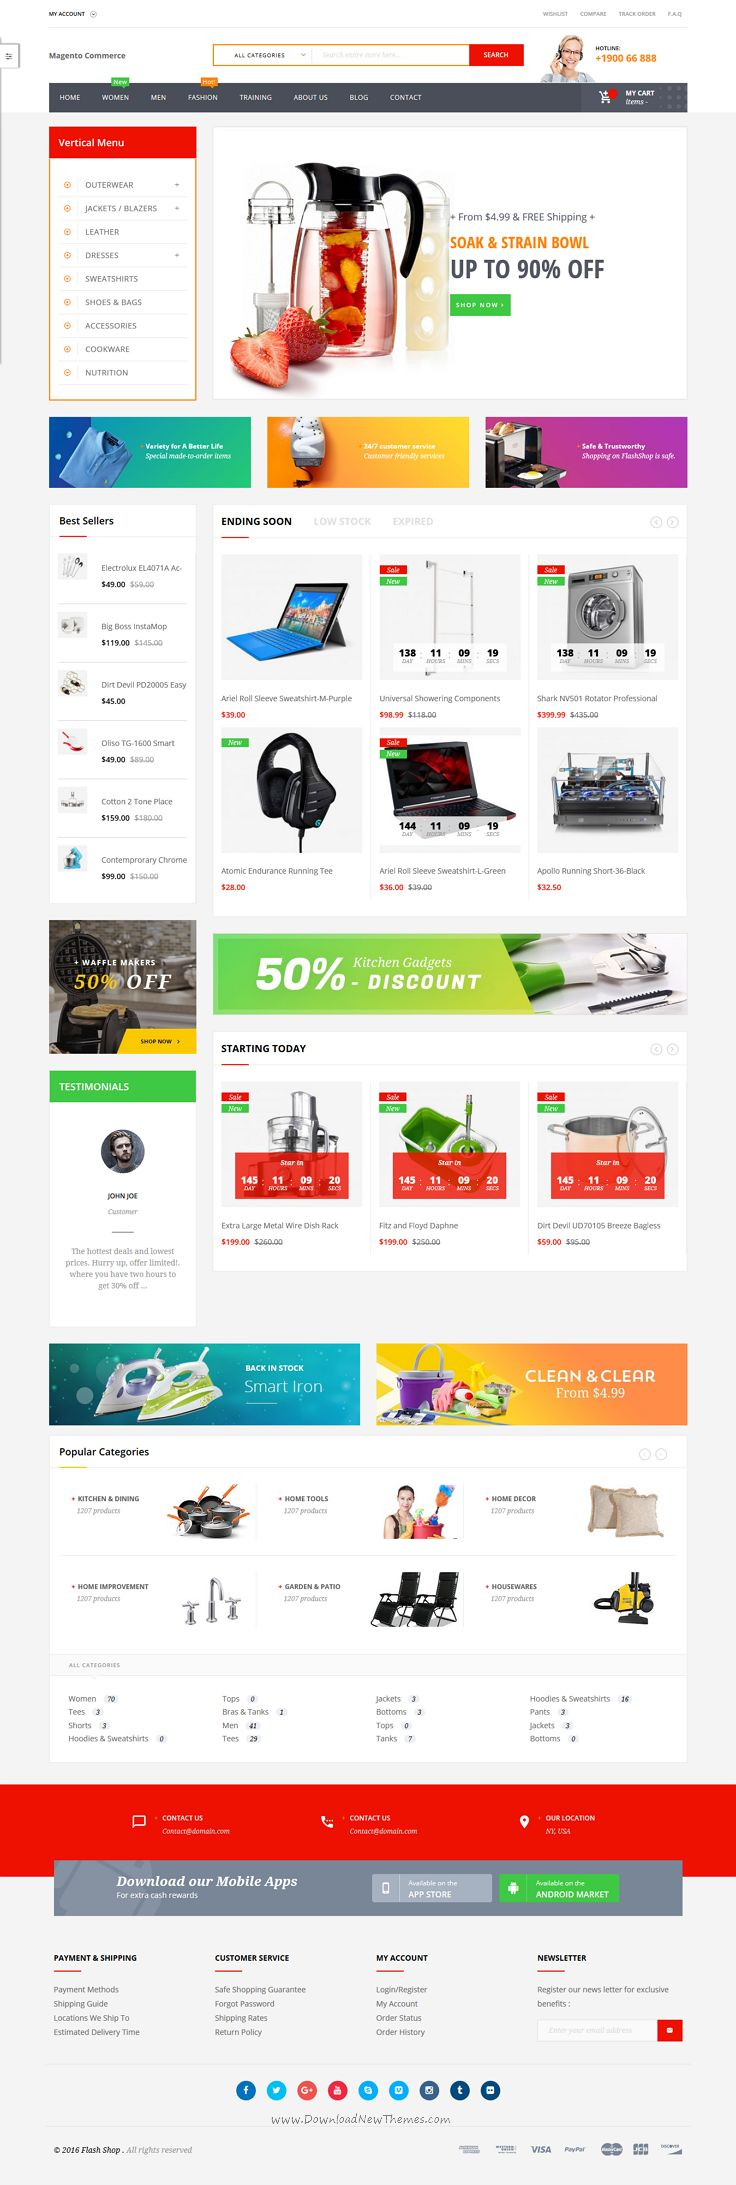 Flashshop is awesome 6 in 1 #Magento 2 theme for multipurpose #electronic #store eCommerce website download now➯ https://themeforest.net/item/ves-flashshop-magento-2-responsive-template/16862663?ref=Datasata